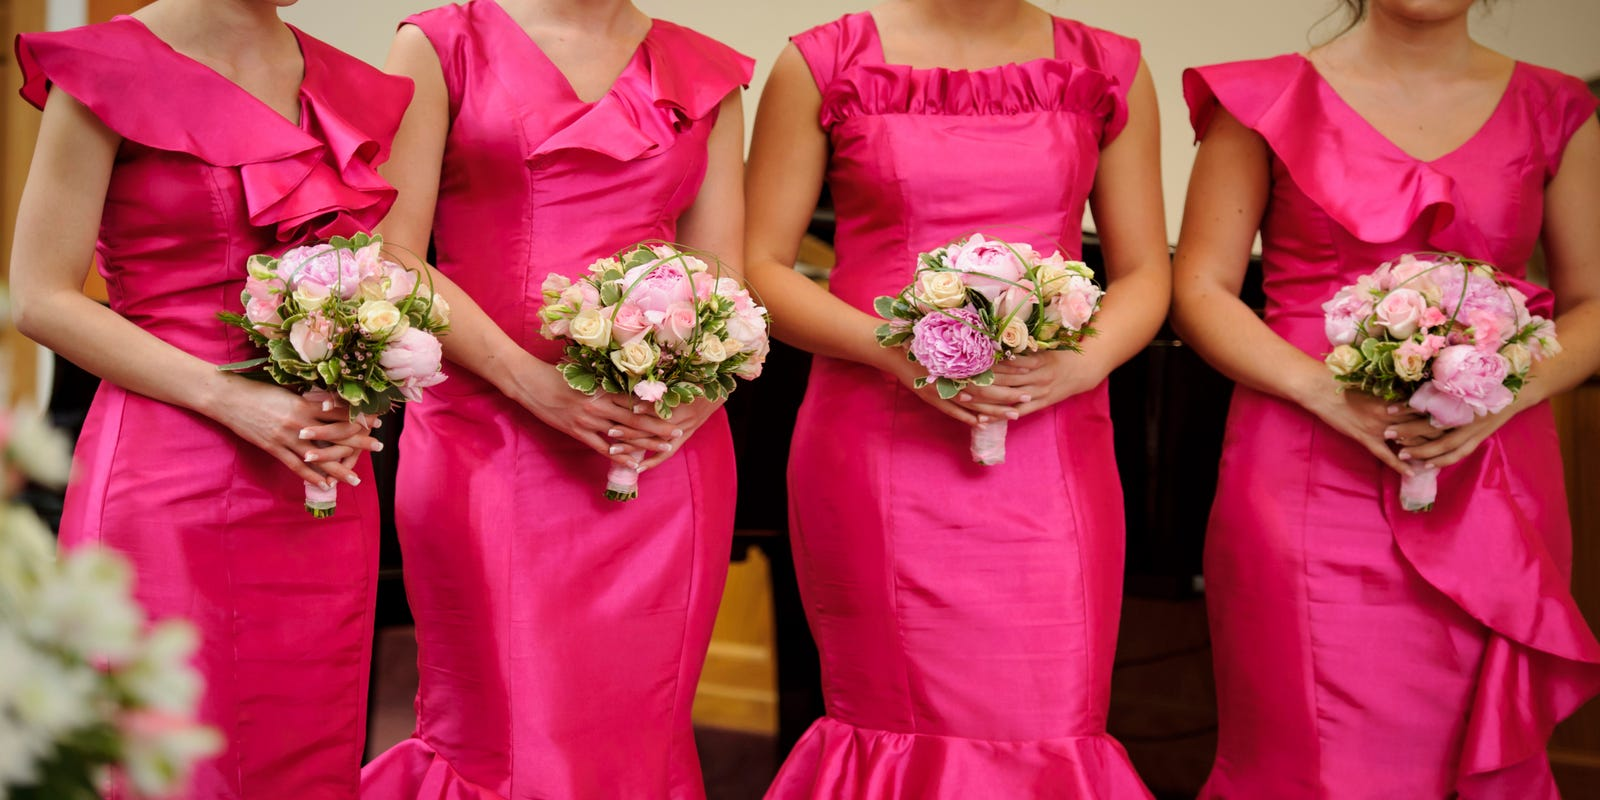 Young Money: Wedding etiquette extends to finances, too